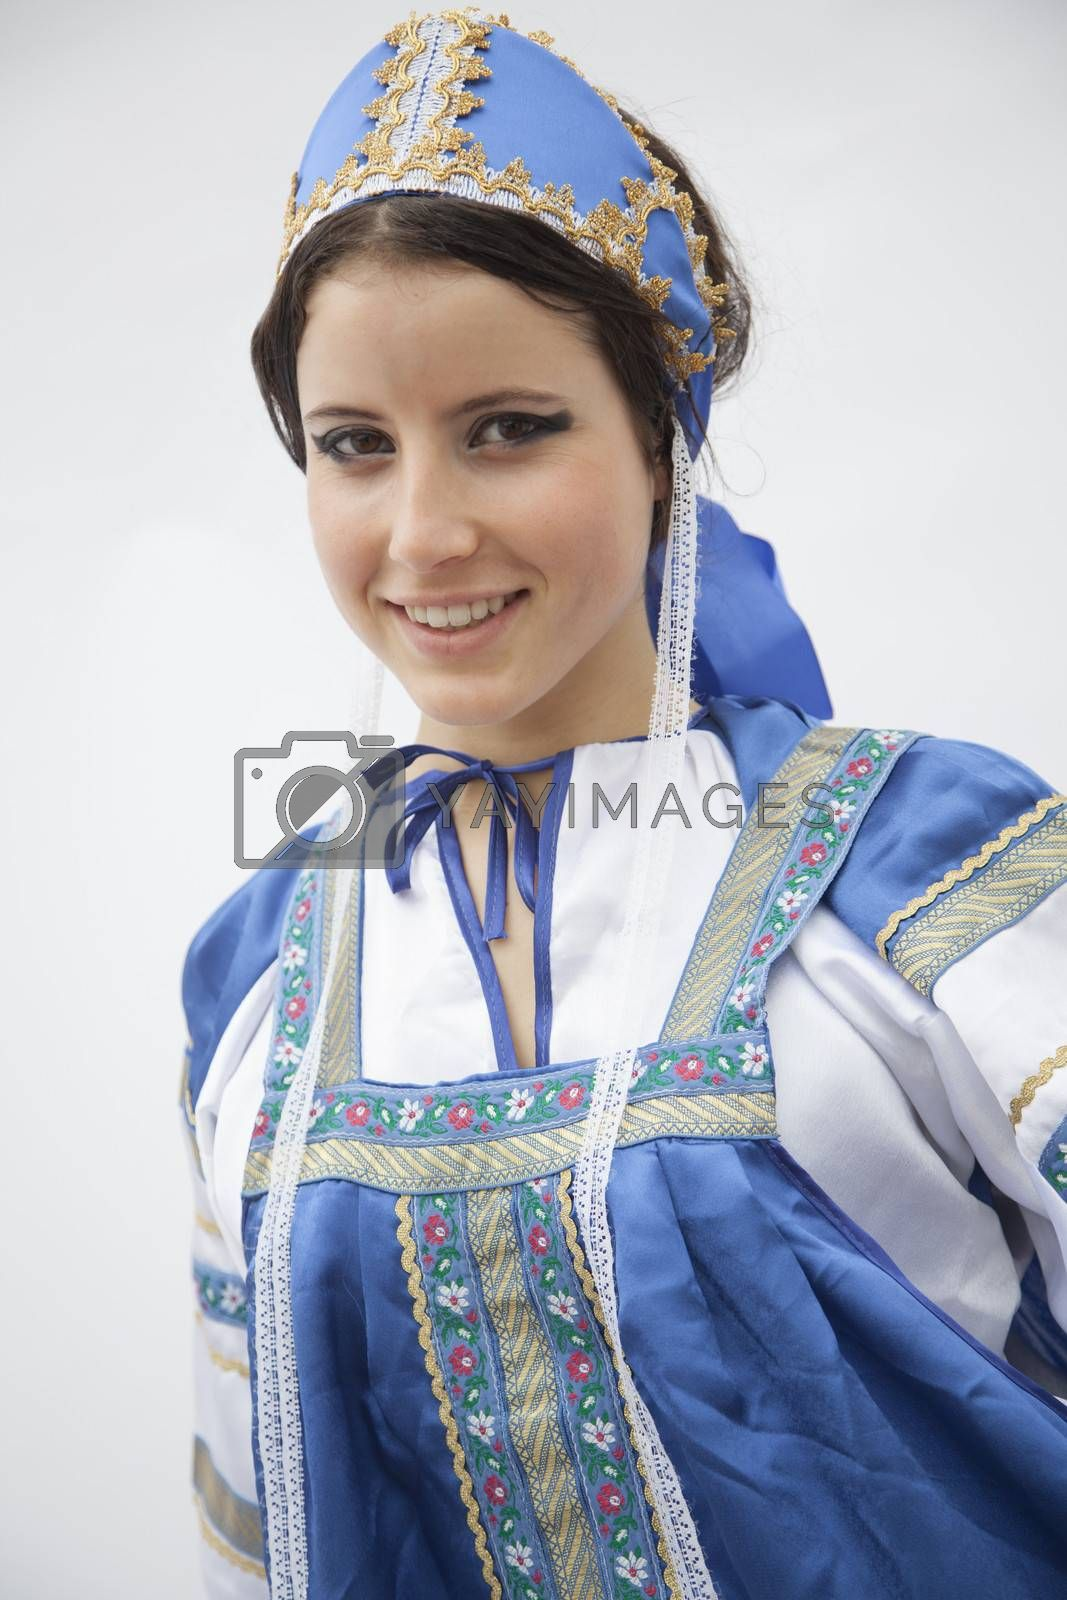 Portrait of young smiling woman in traditional clothing from Russia, studio shot